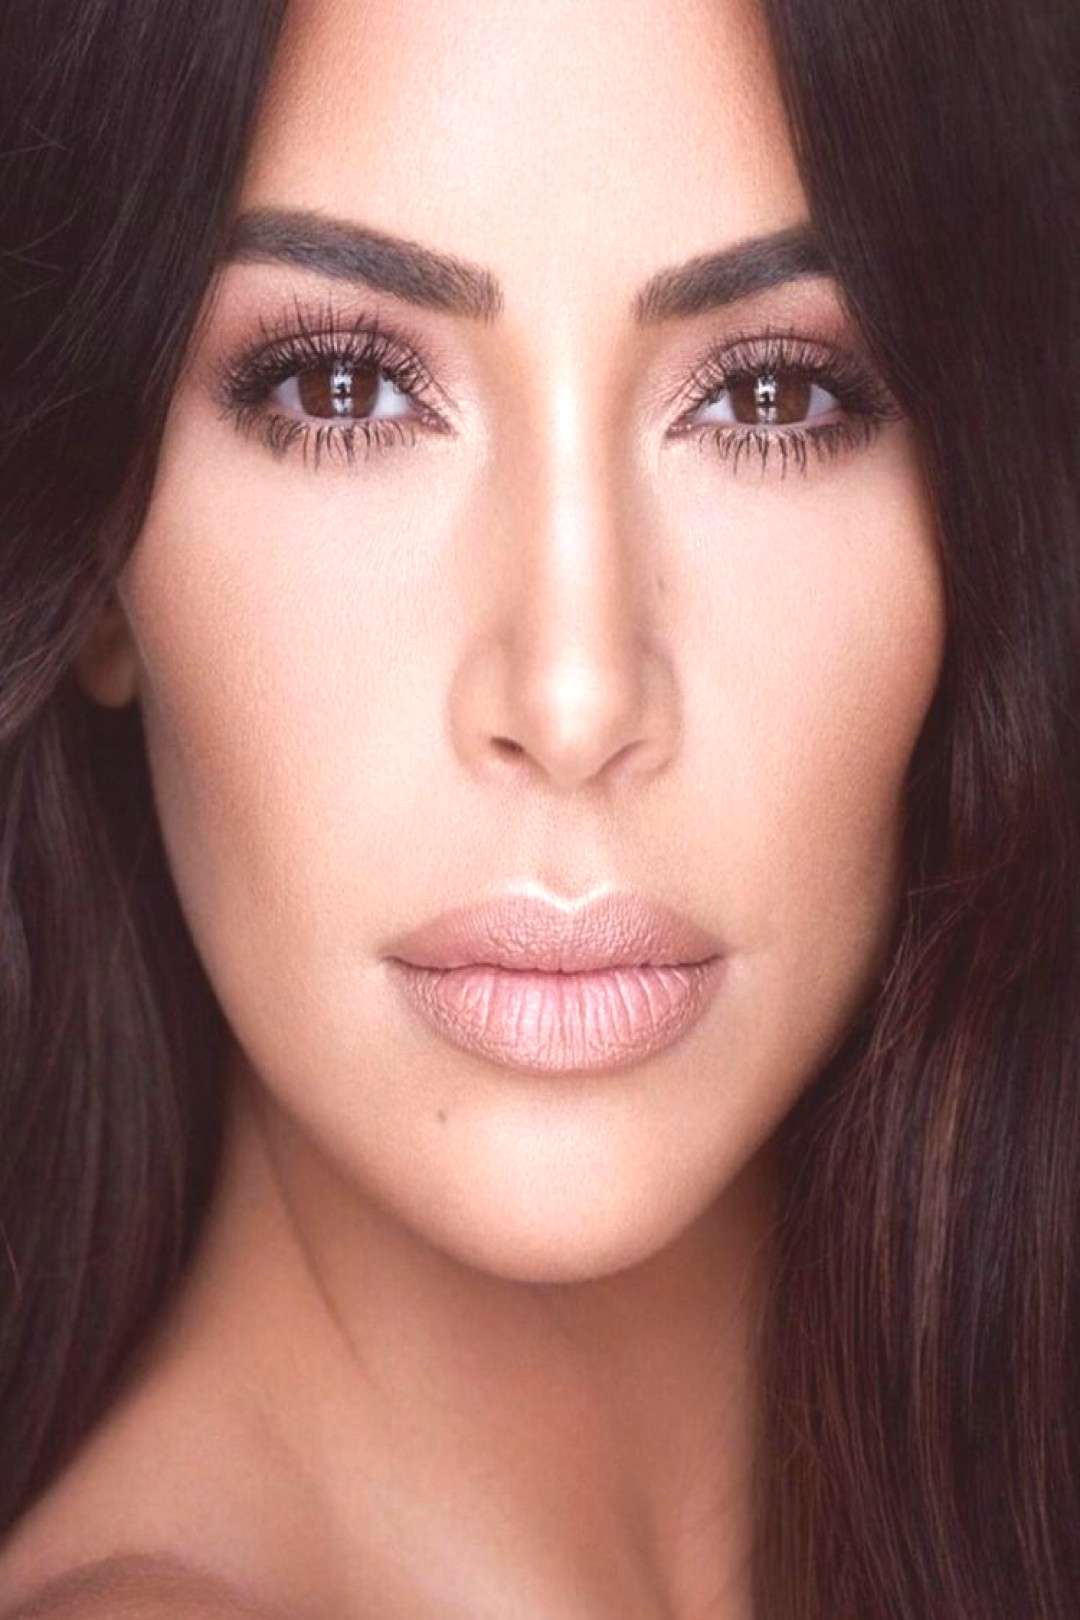 Lips full of makeup lip contouring and ombré lips in the trend ... - Lips full of make-up lip c